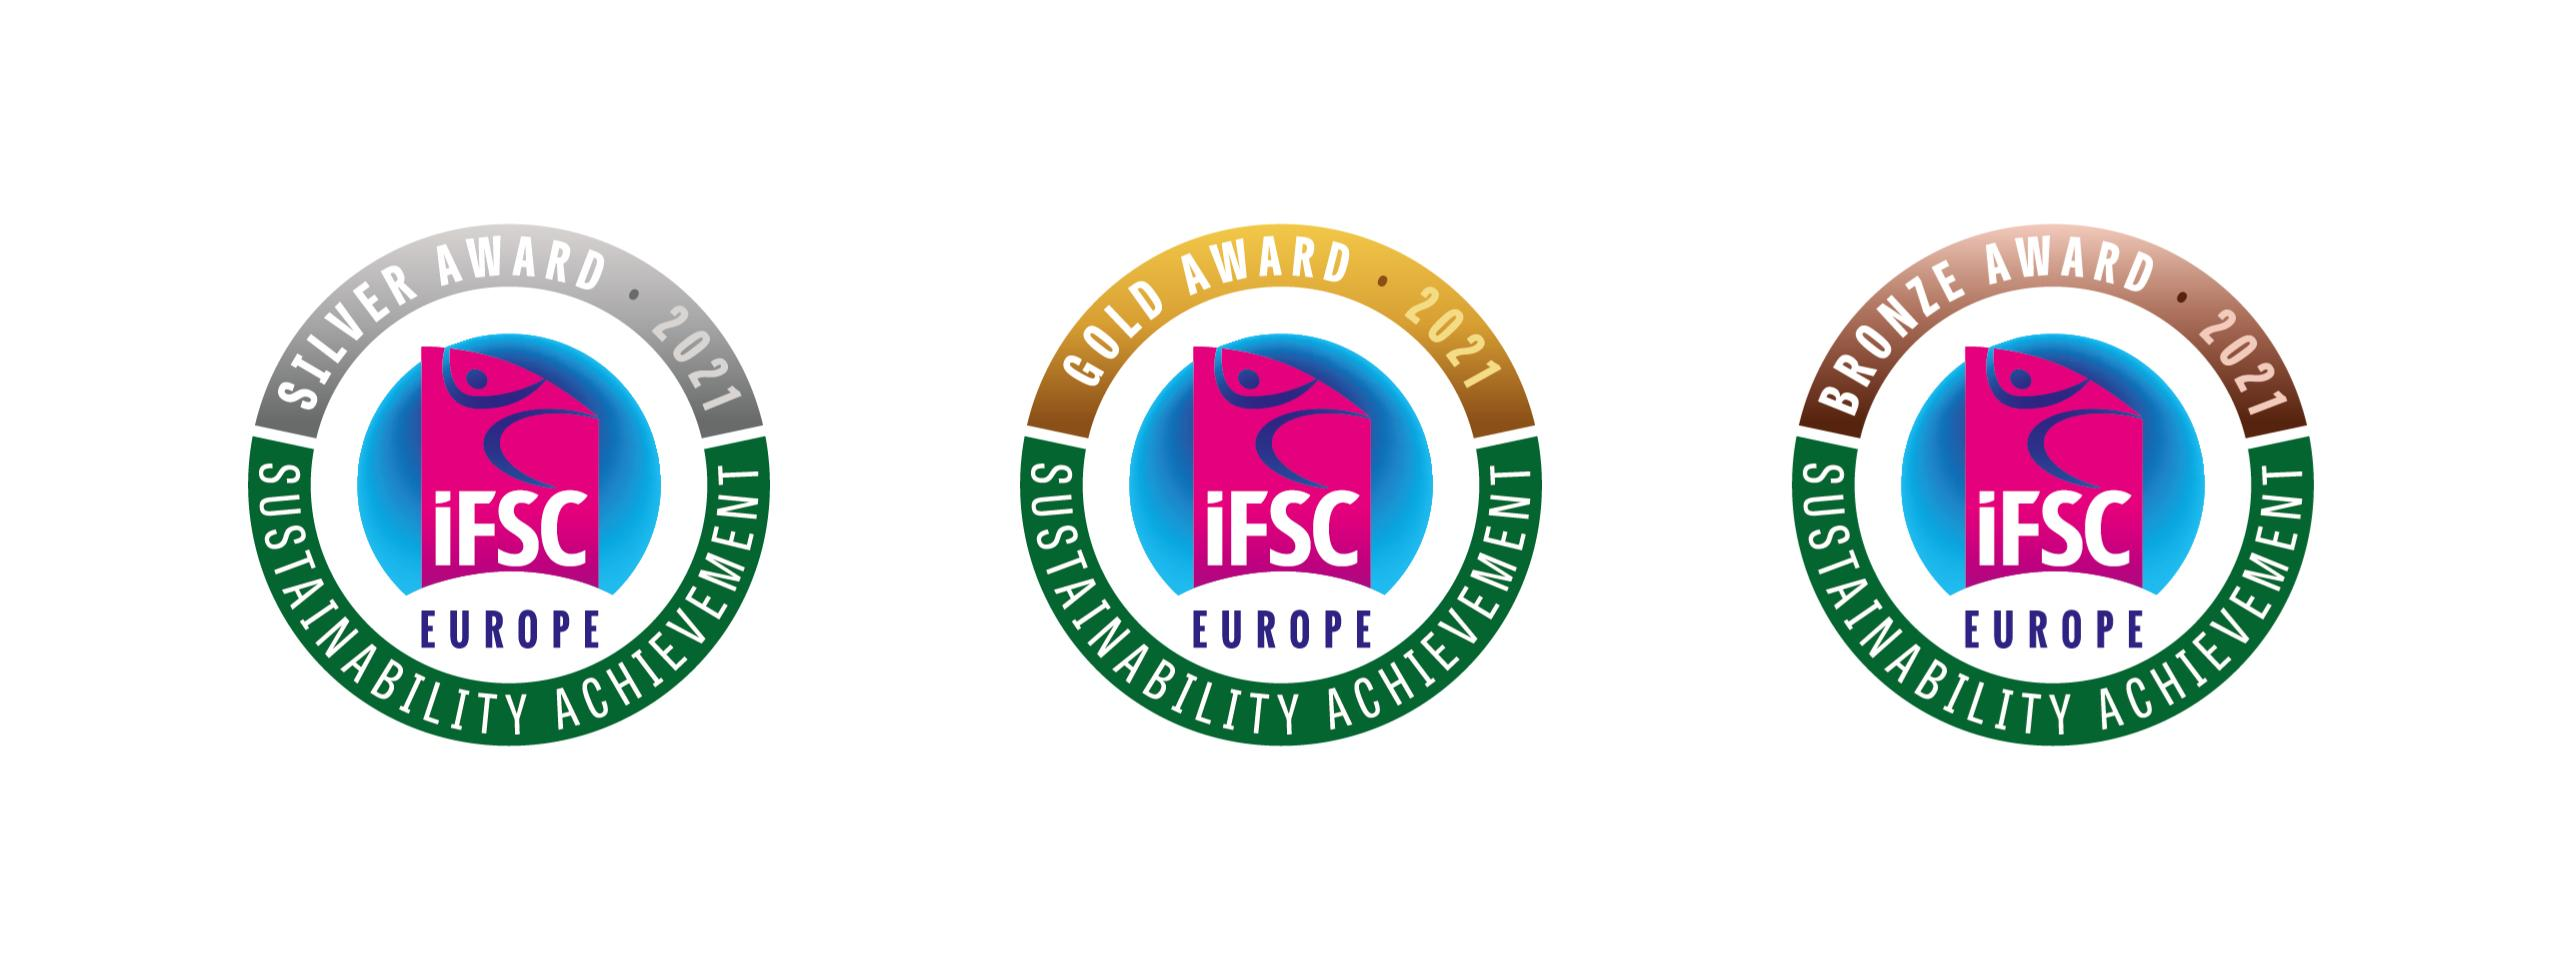 IFSC EUROPE PRESENTS THE 2021 SUSTAINABILITY AWARD